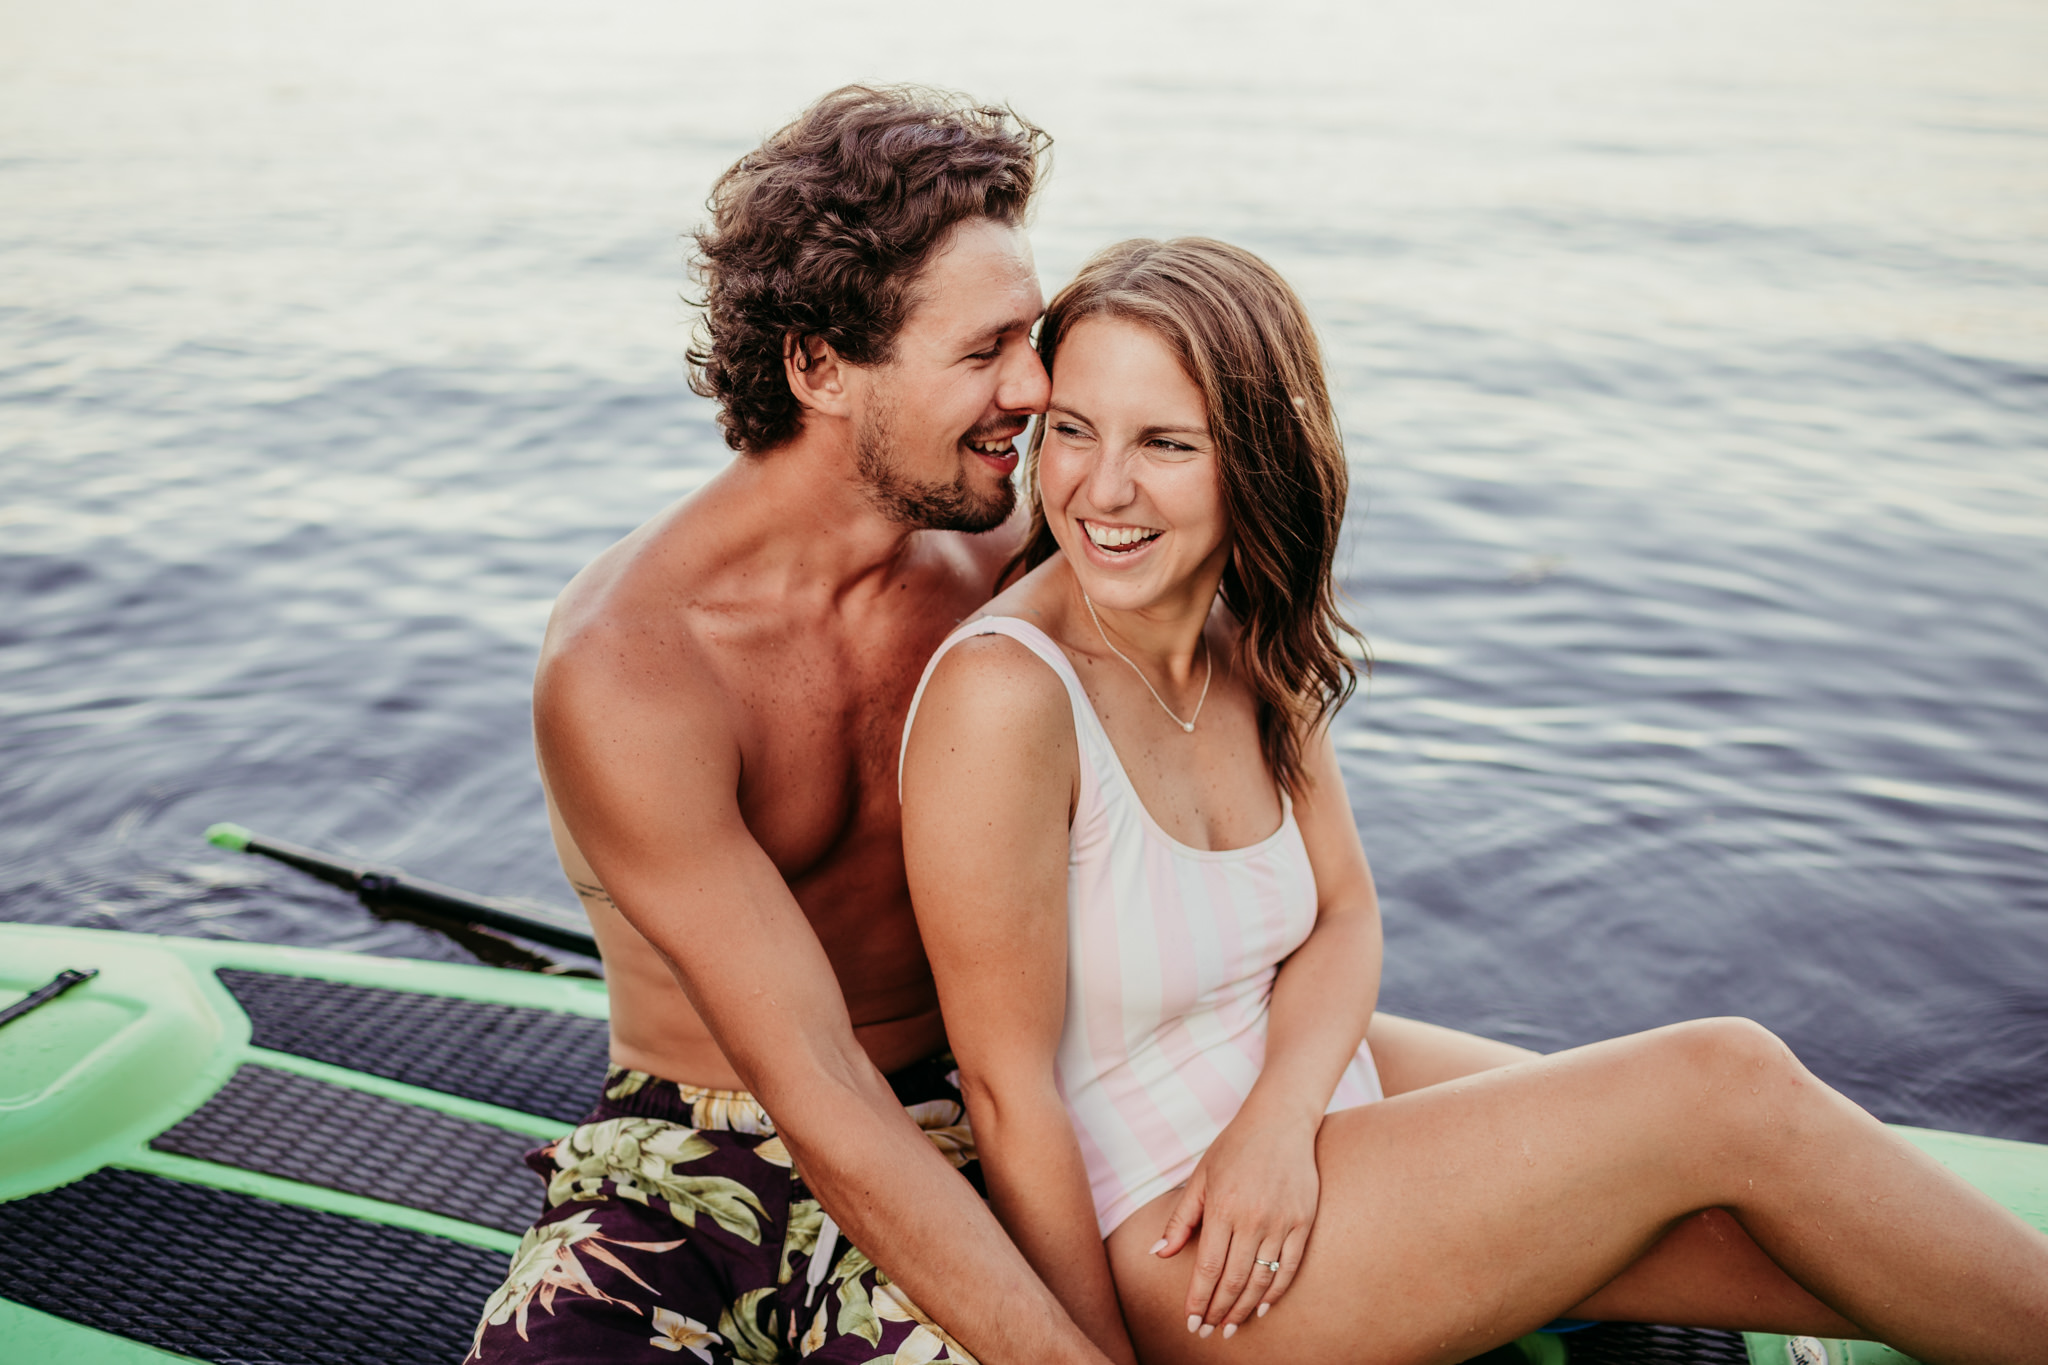 guy whispering into ear of his fiance on a lake